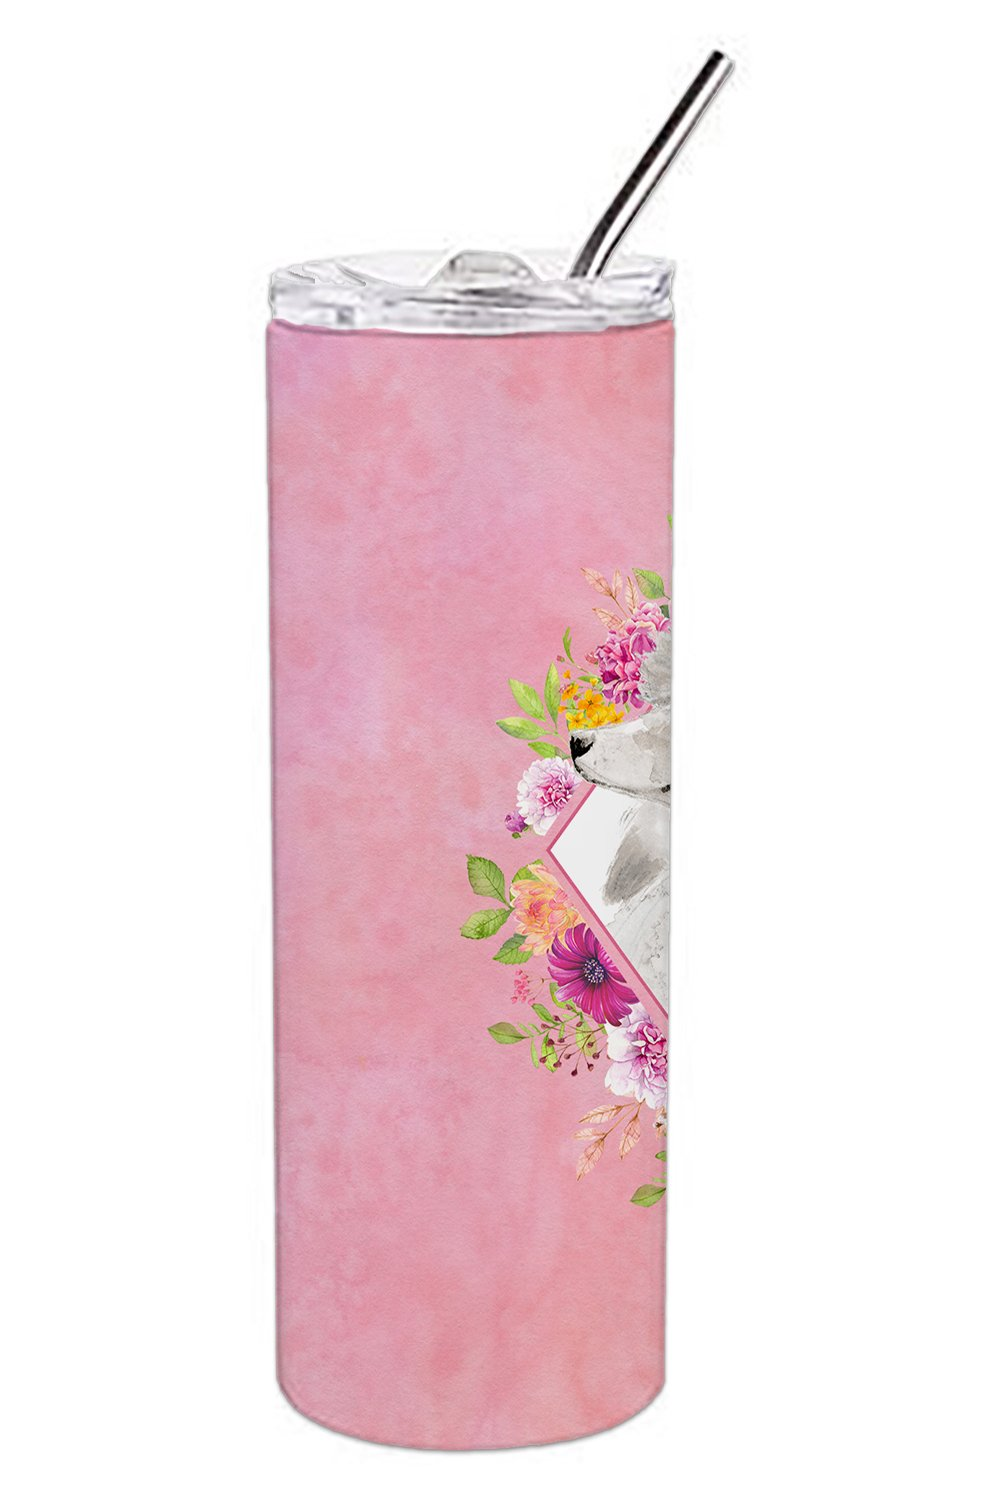 White Standard Poodle Pink Flowers Double Walled Stainless Steel 20 oz Skinny Tumbler CK4200TBL20 by Caroline's Treasures